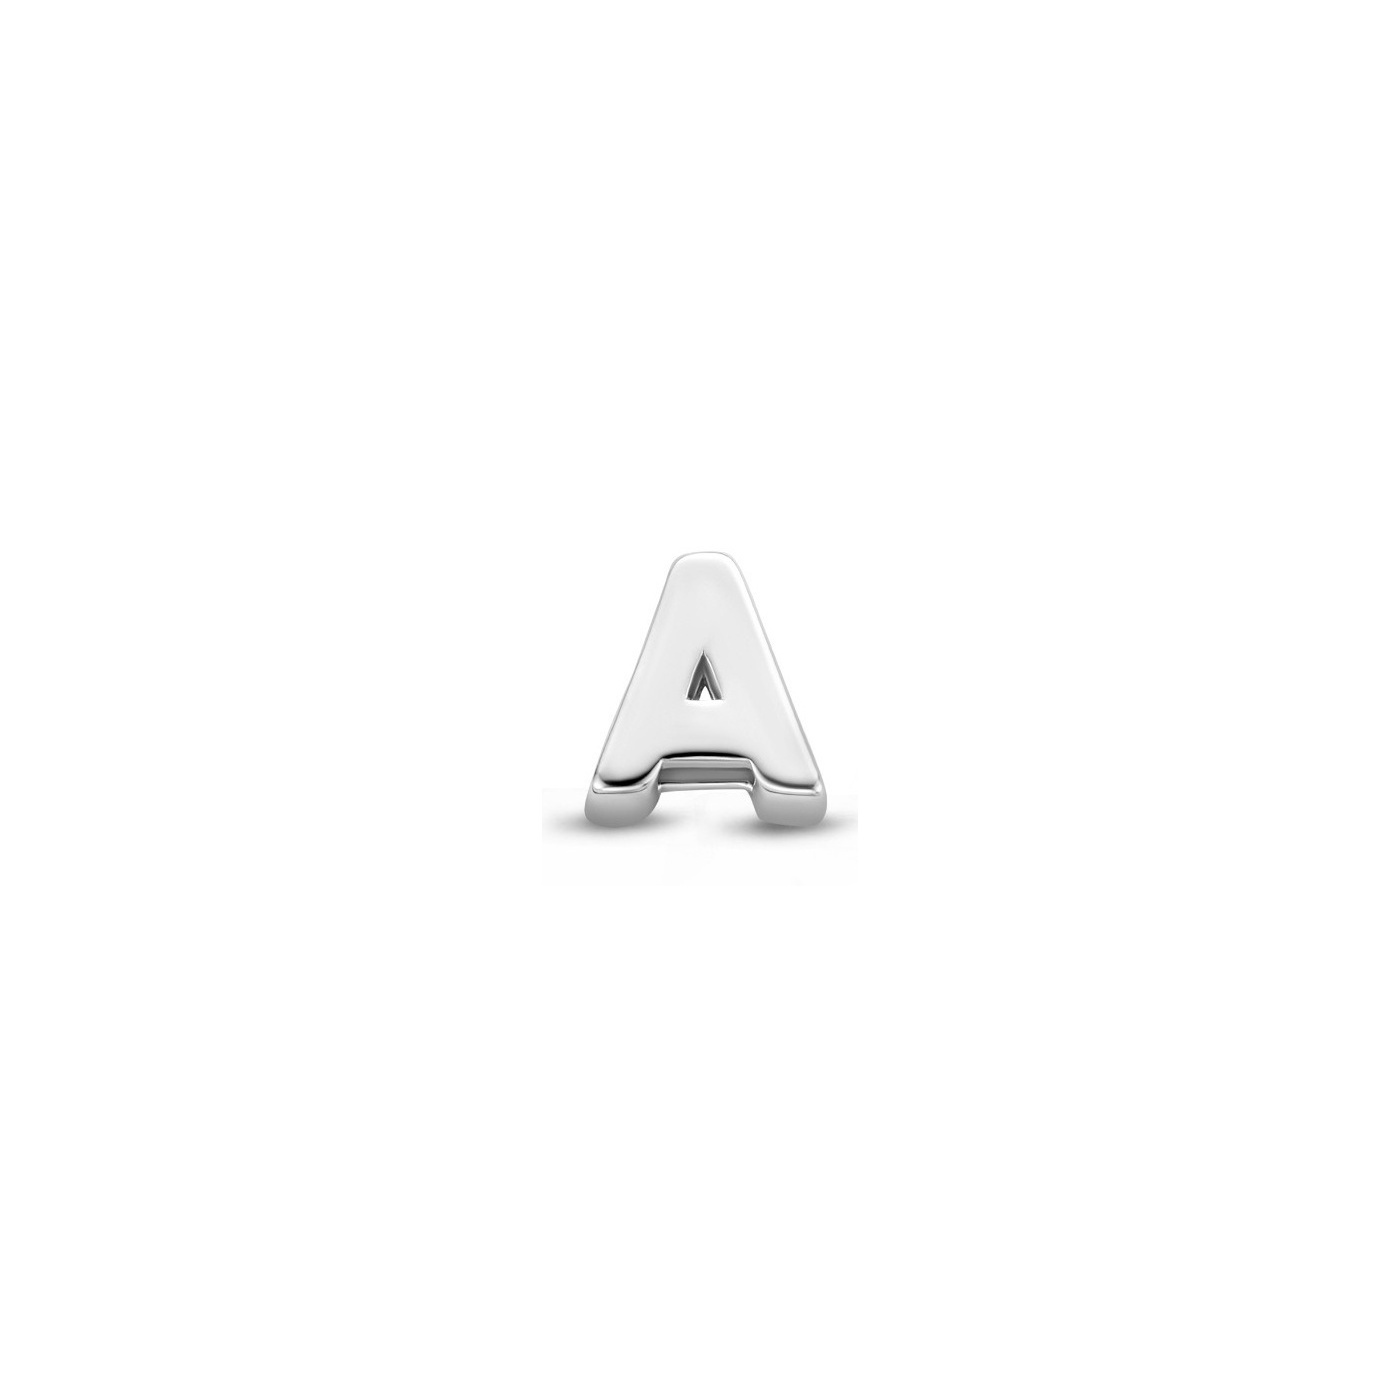 Silver Ear Stud With Letter Initial Letter Ear Stud Made Of Silver